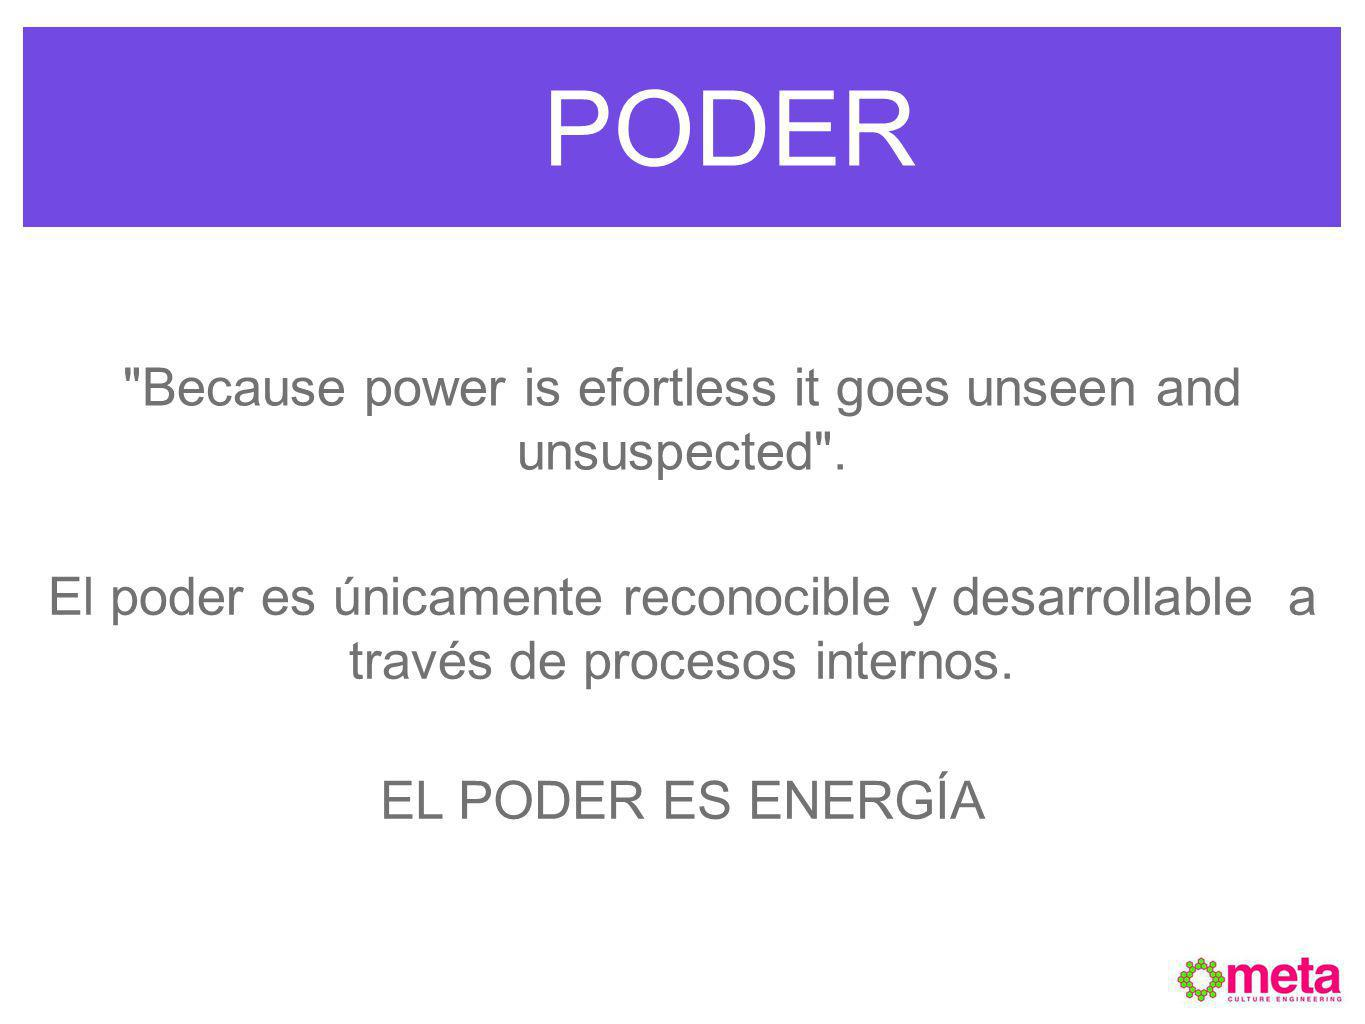 Because power is efortless it goes unseen and unsuspected .